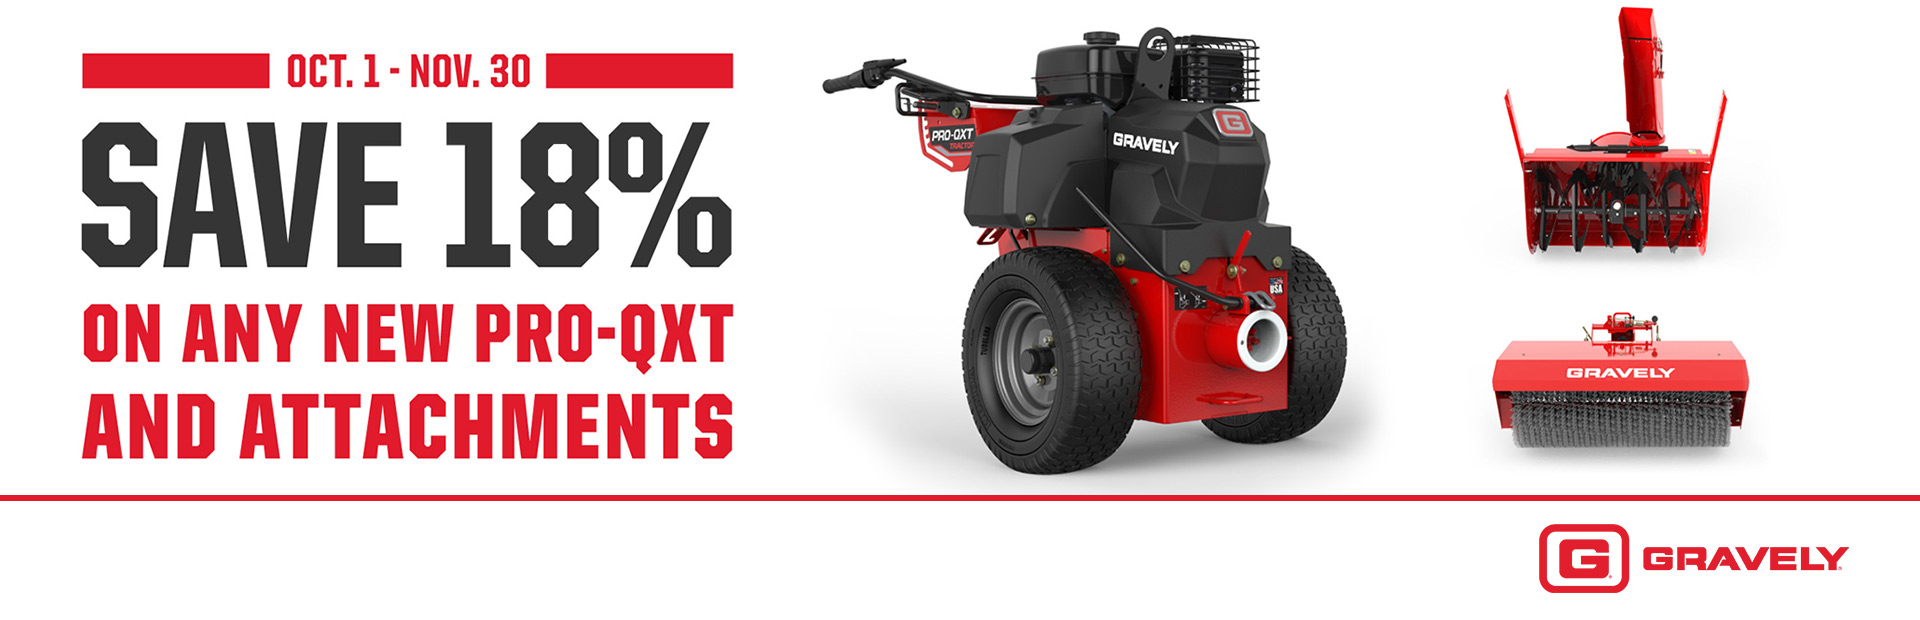 Save 18% On Any New Pro-QXT And Attachments